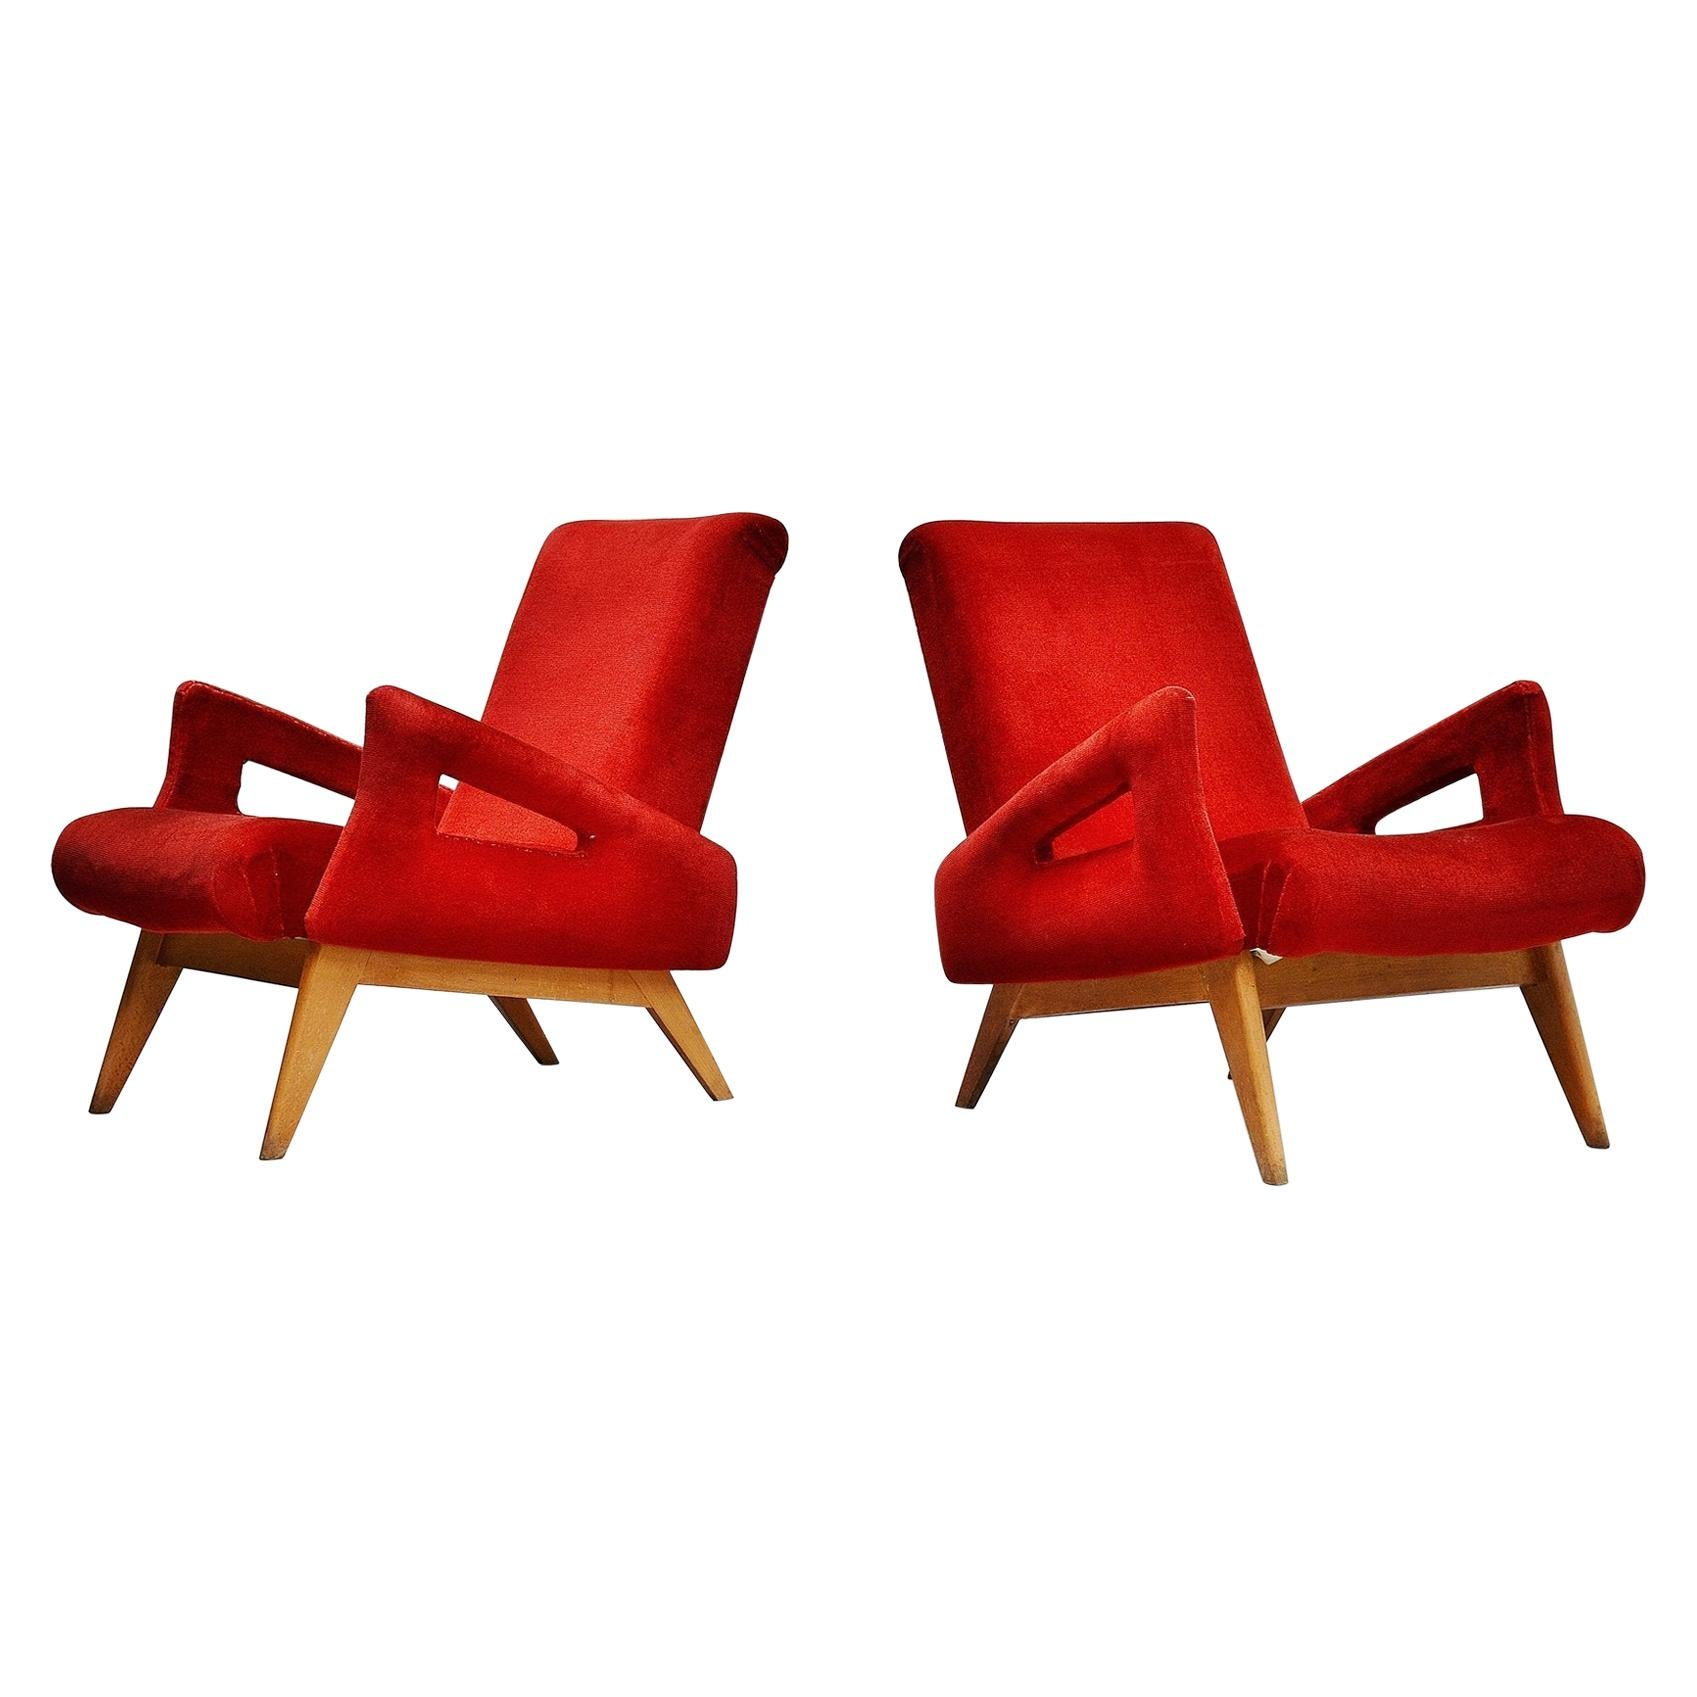 Jean Royère Style Lounge Chairs, France, 1950